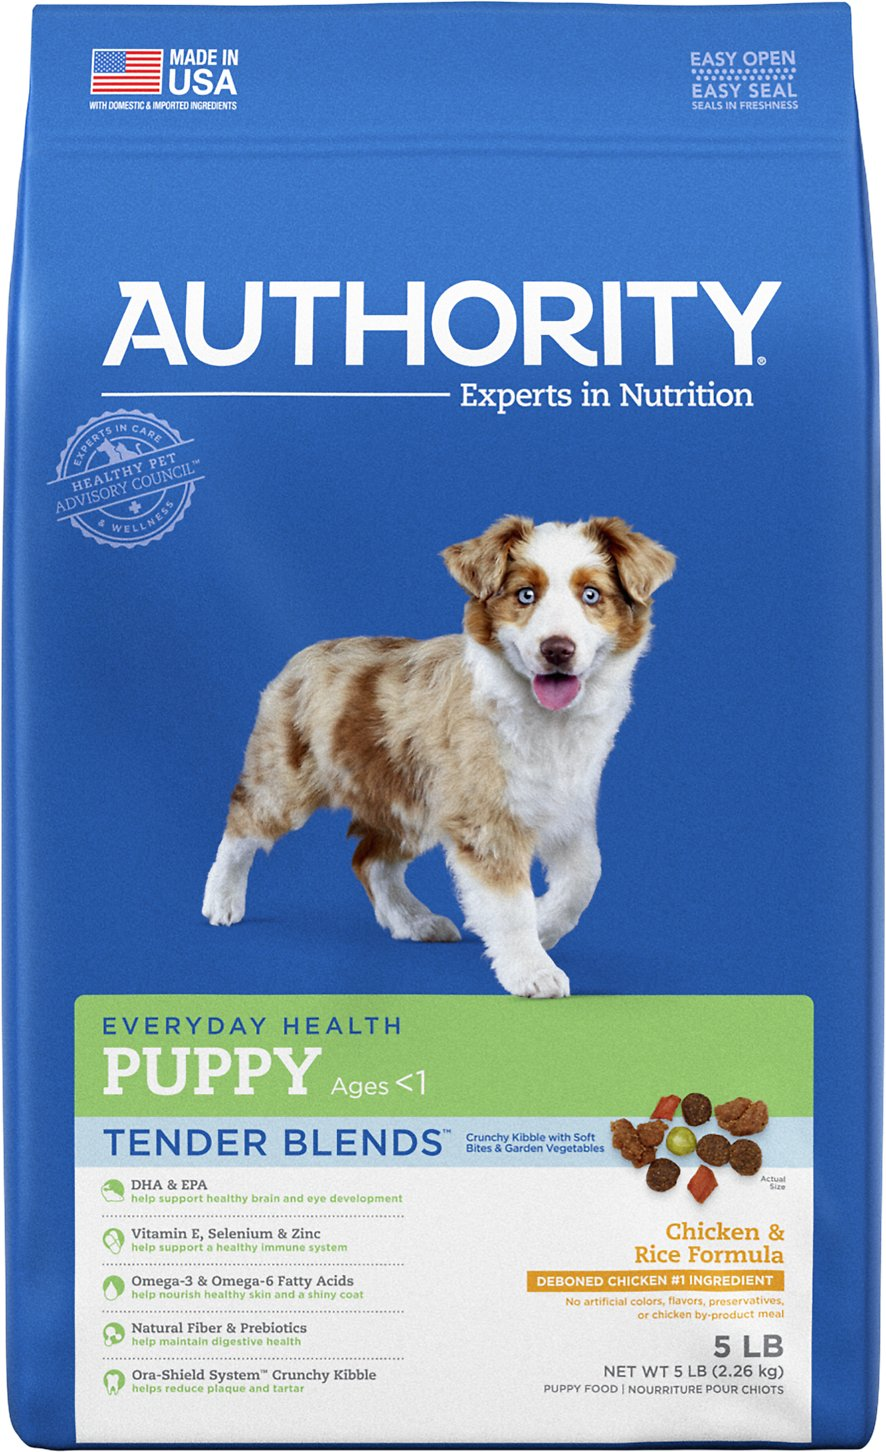 Pet Nutrition: 5 Dog Food Ingredients to Avoid Pet Nutrition: 5 Dog Food Ingredients to Avoid new picture